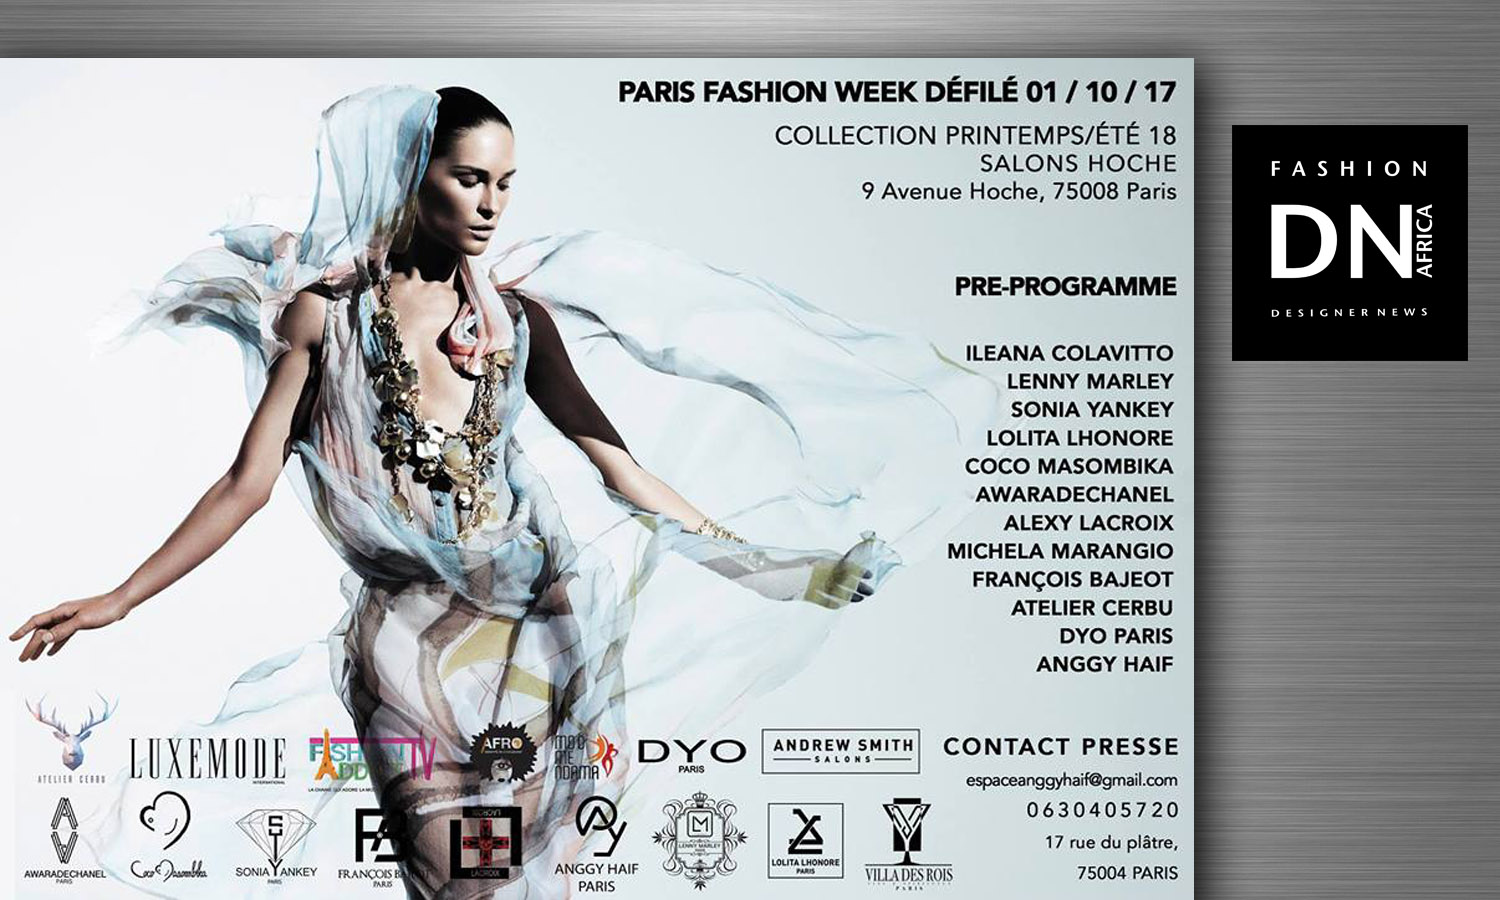 DNAFRICA-DN AFRICA-PARIS FASHION WEEK-SS 18